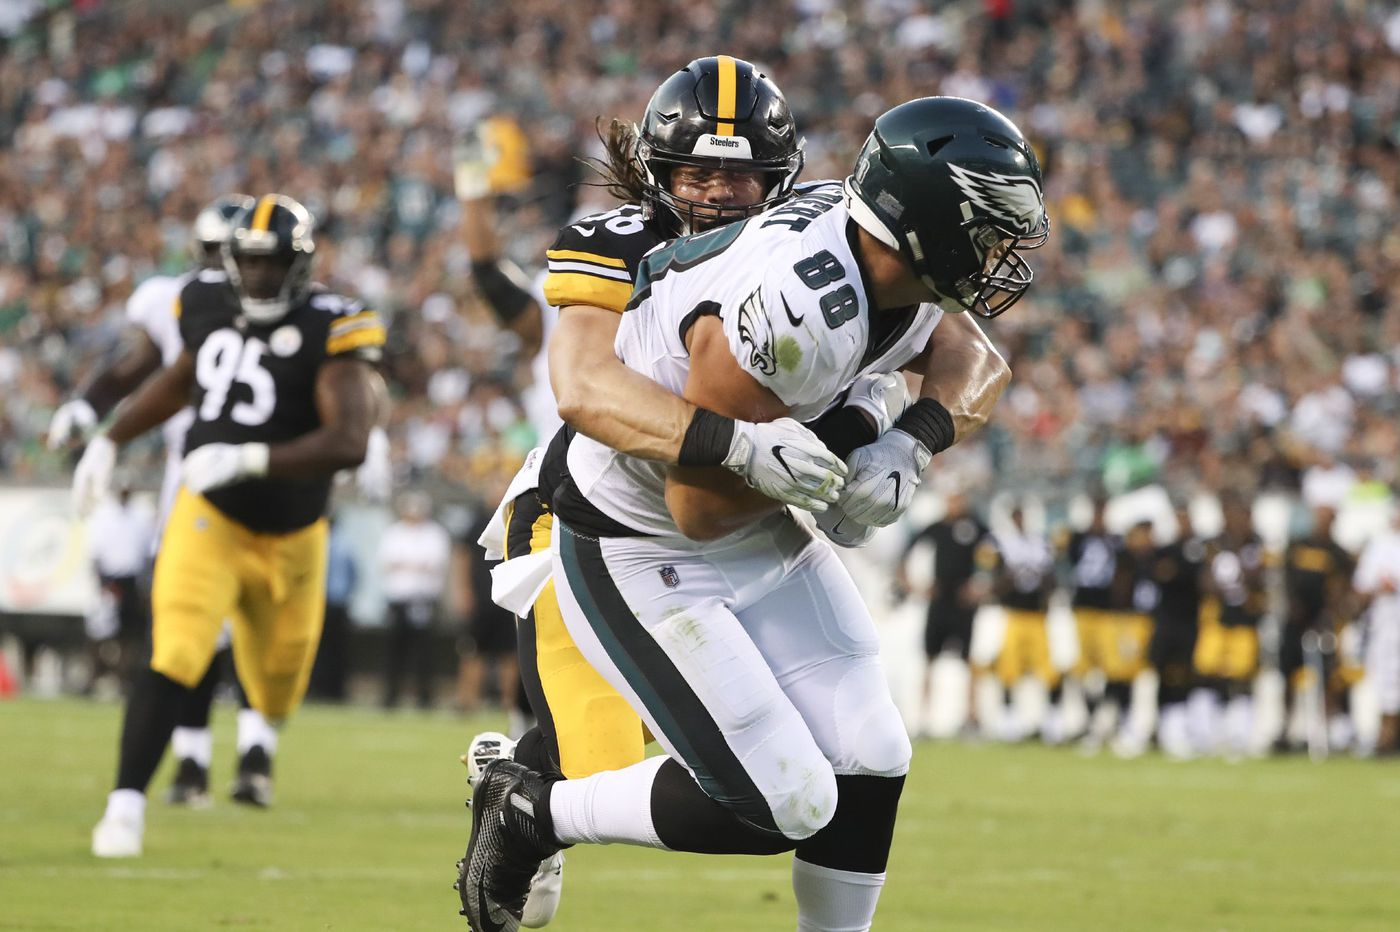 Dallas Goedert does his NFL debut in Eagles-Steelers preseason opener in style